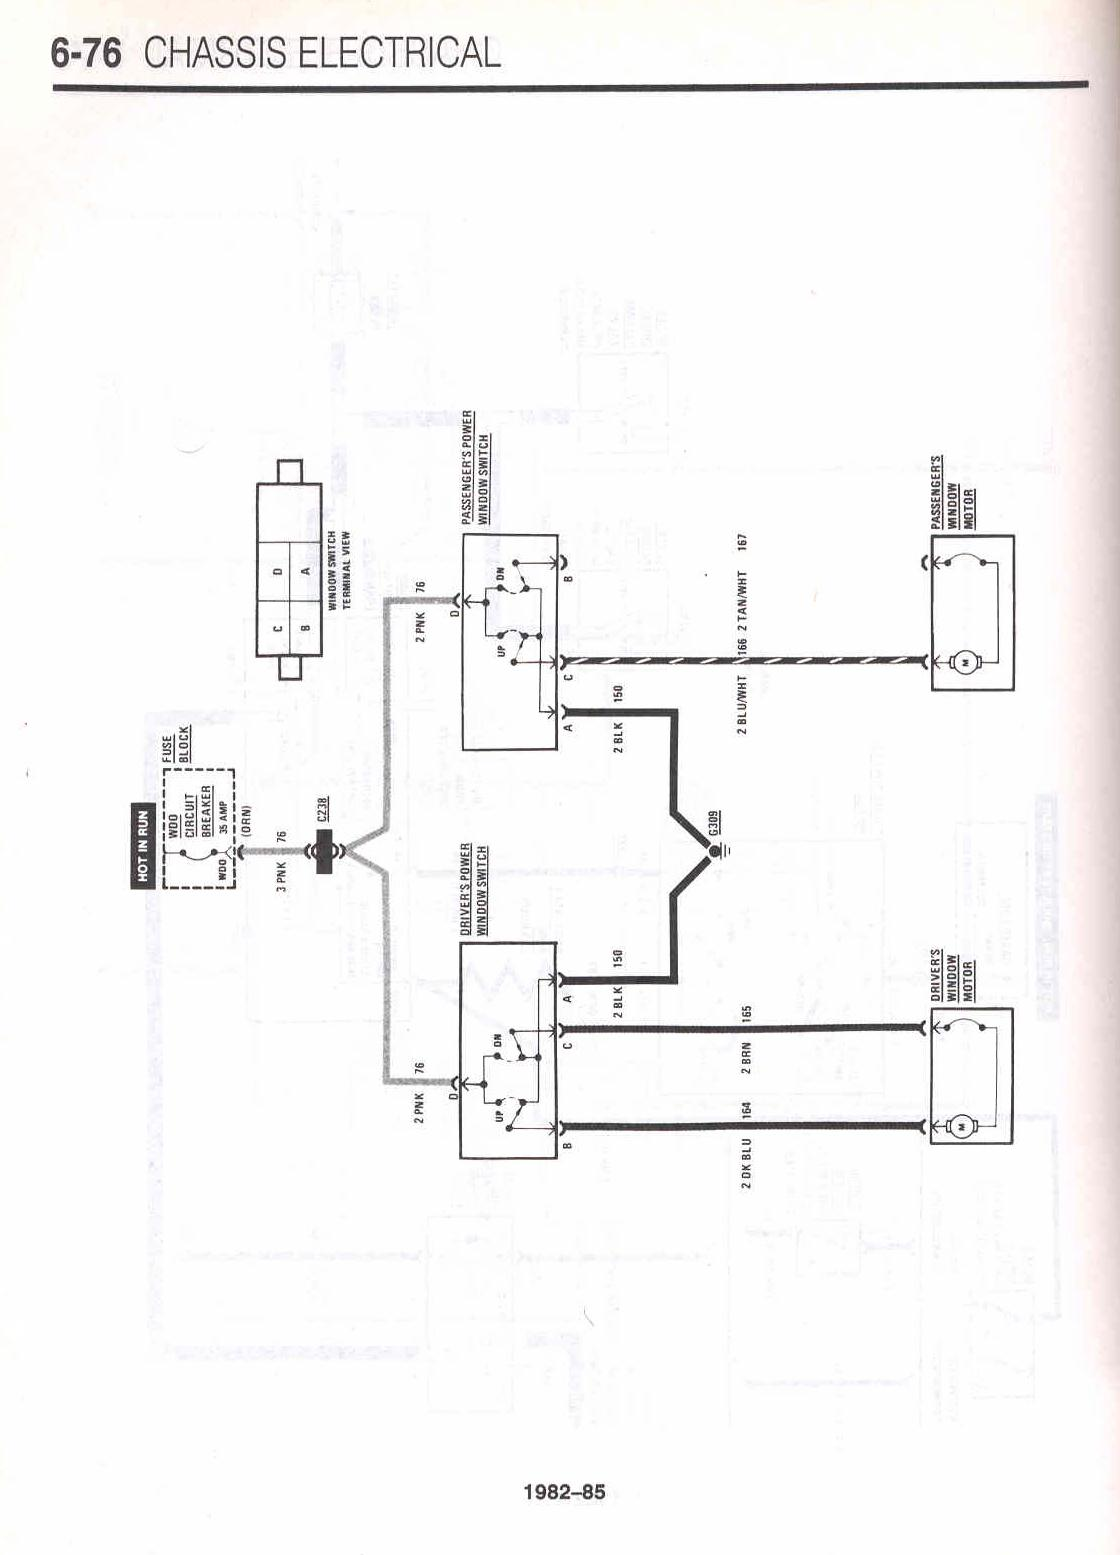 77 Corvette Fuel System Diagram, 77, Free Engine Image For